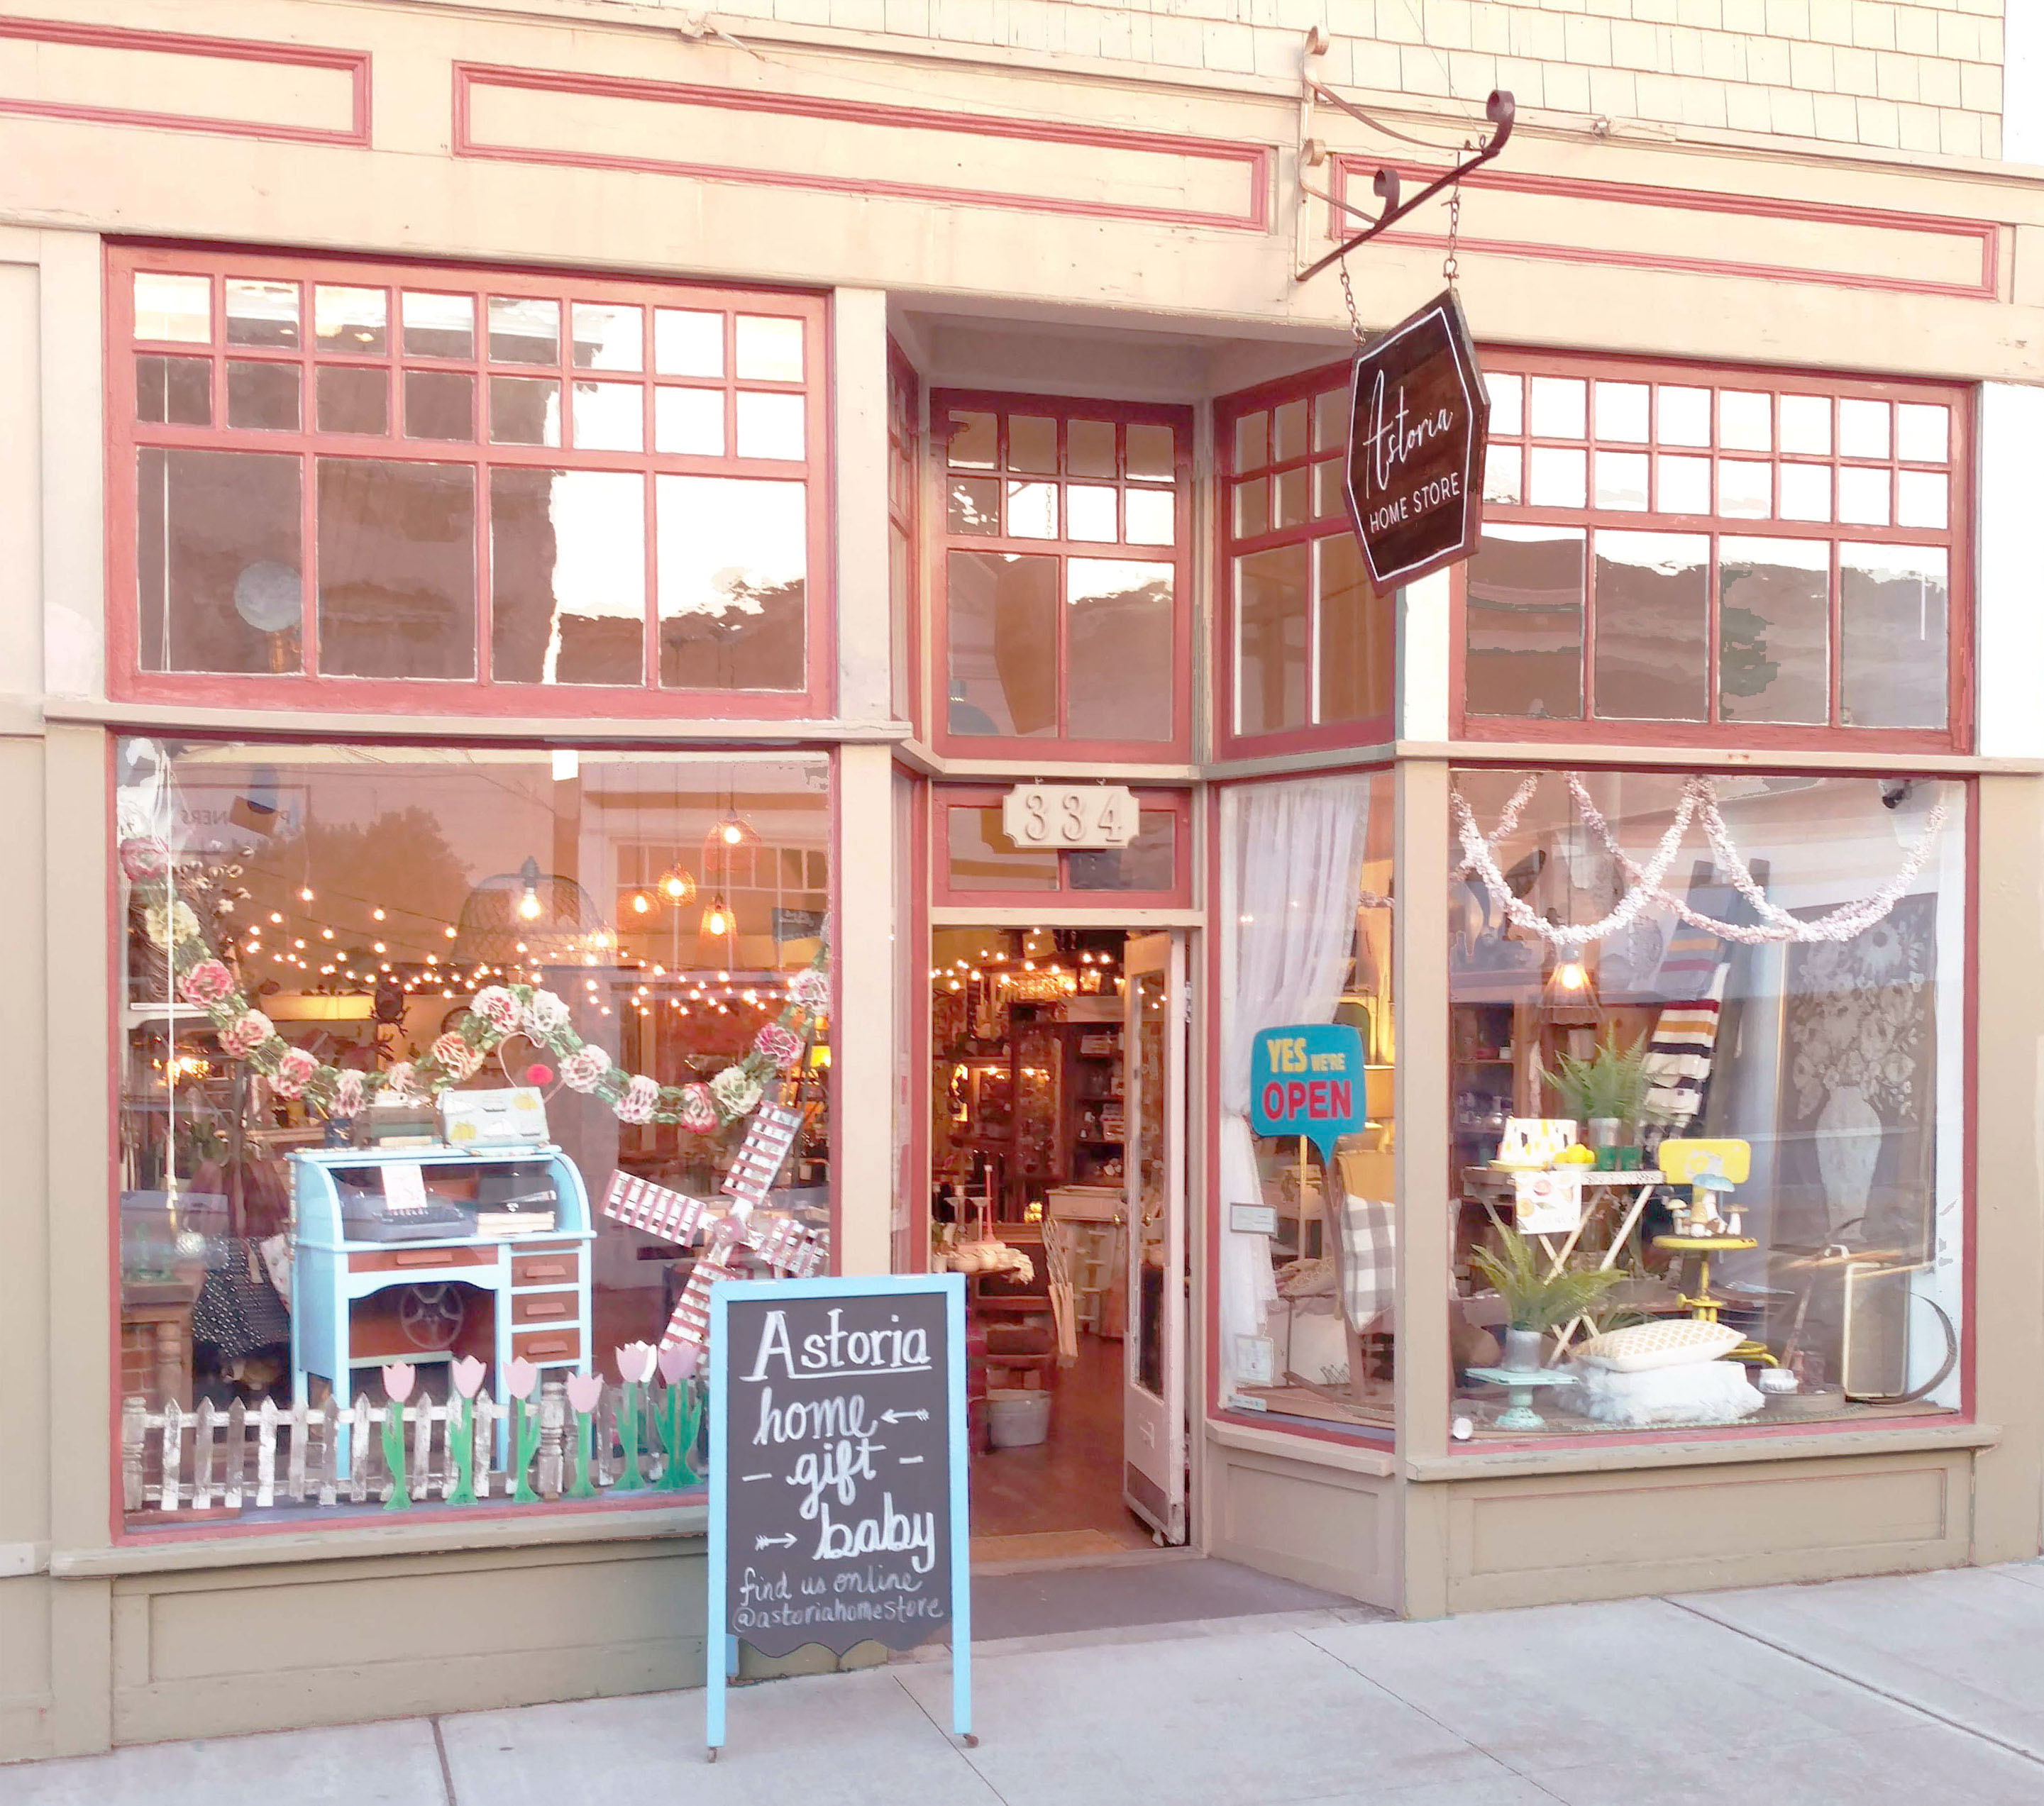 Home Furnishing Stores: Astoria Home Decor And Gift Shop